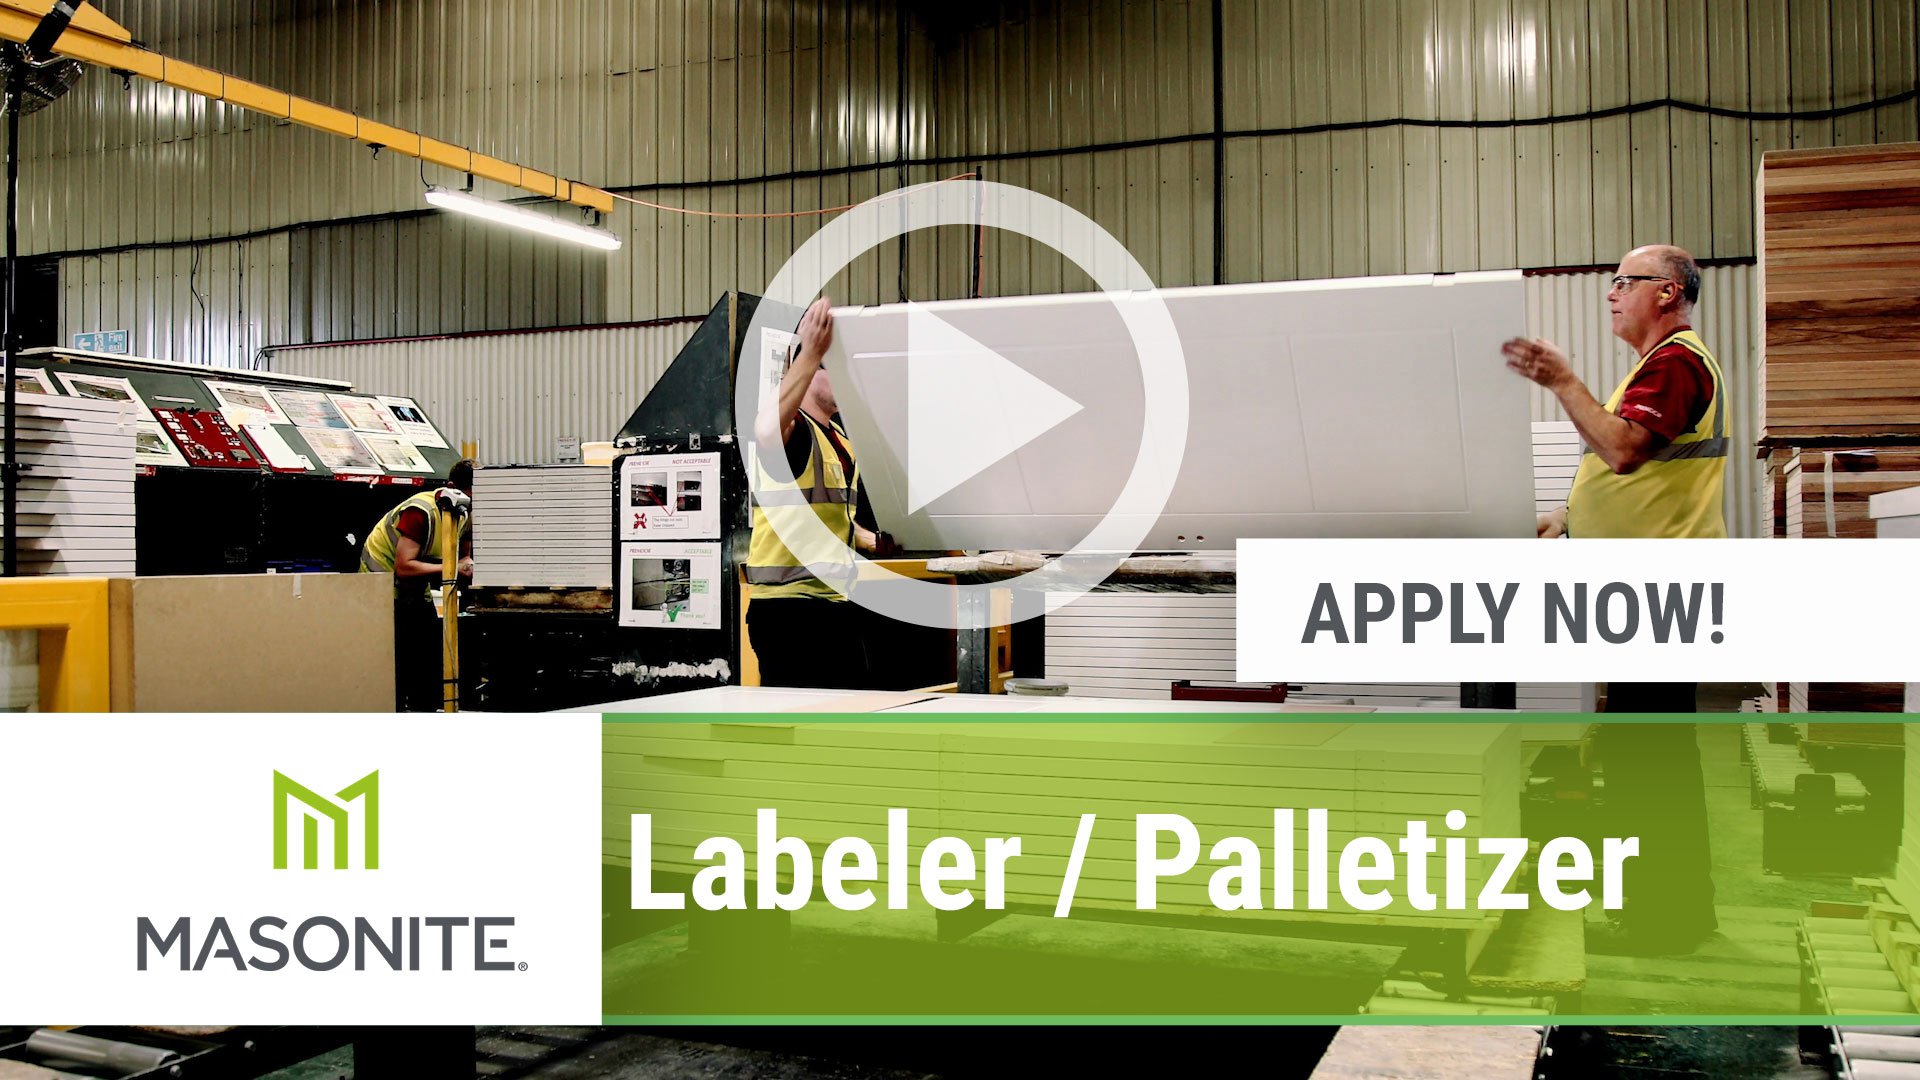 Watch our careers video for available job opening Labeler _ Palletizer in Lawrenceville, GA, USA